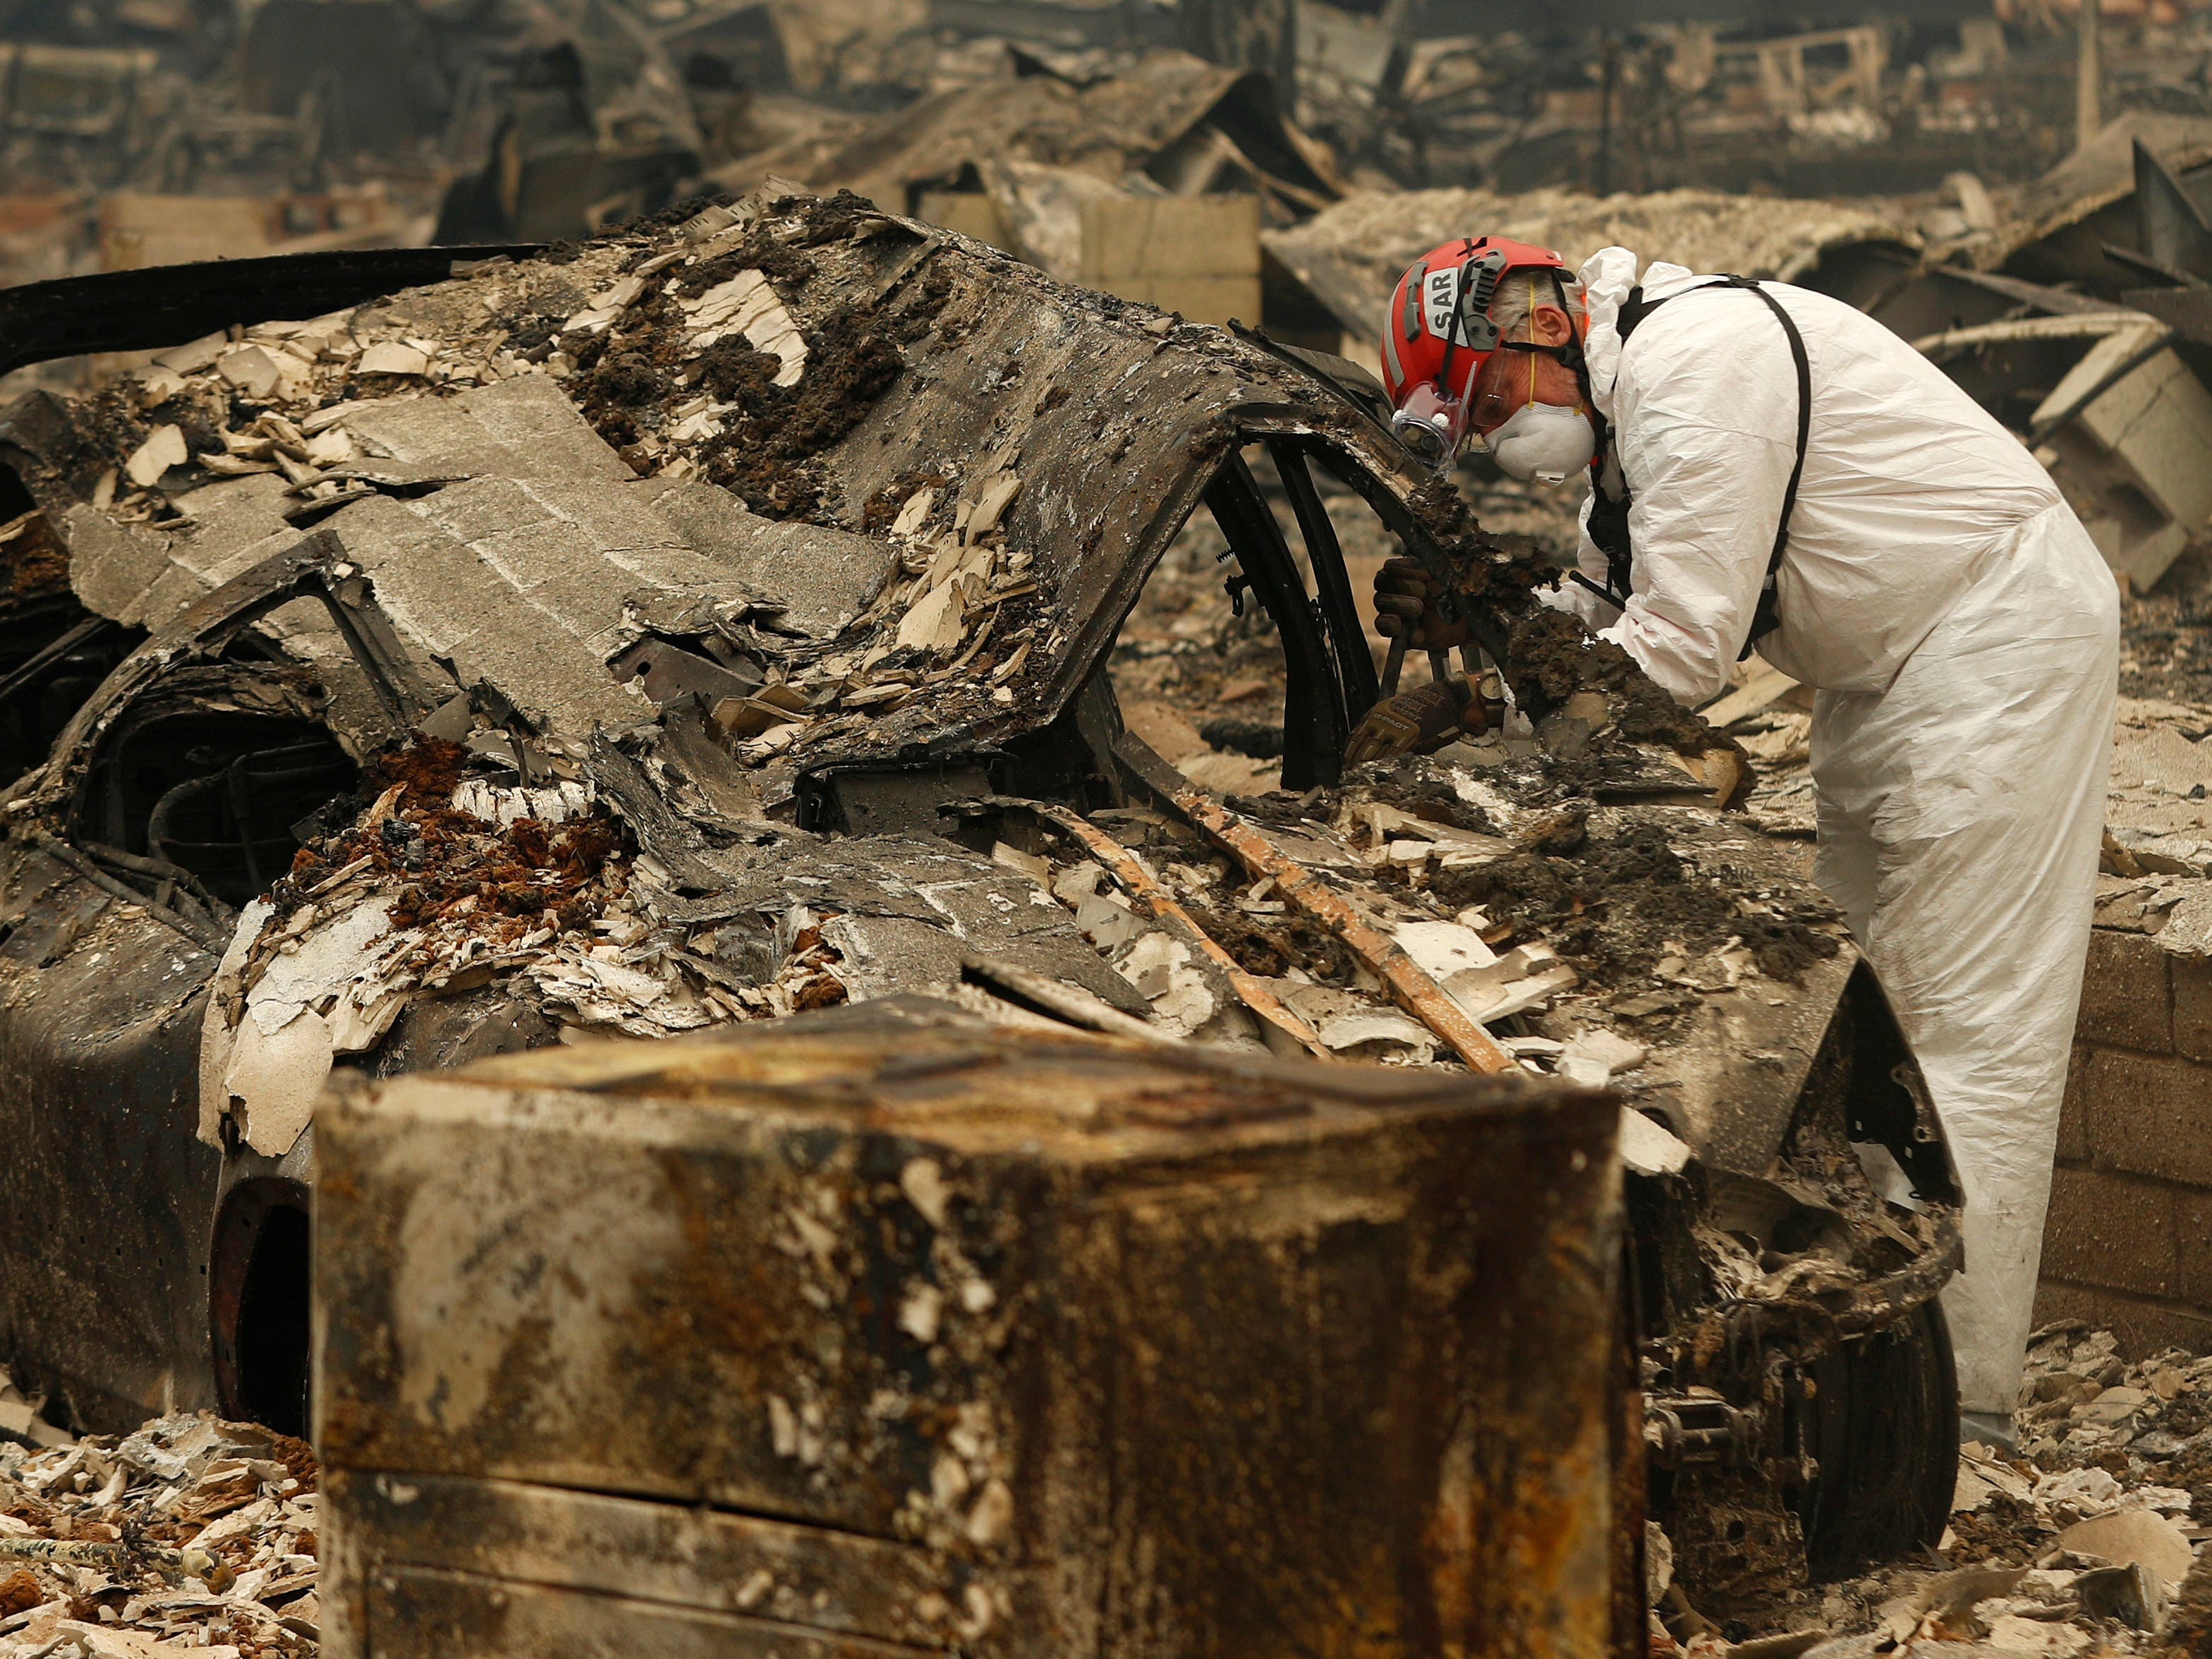 A search and rescue worker searches a car for human remains at a trailer park burned out from the Camp Fire, Tuesday, Nov. 13, 2018, in Paradise, Calif.